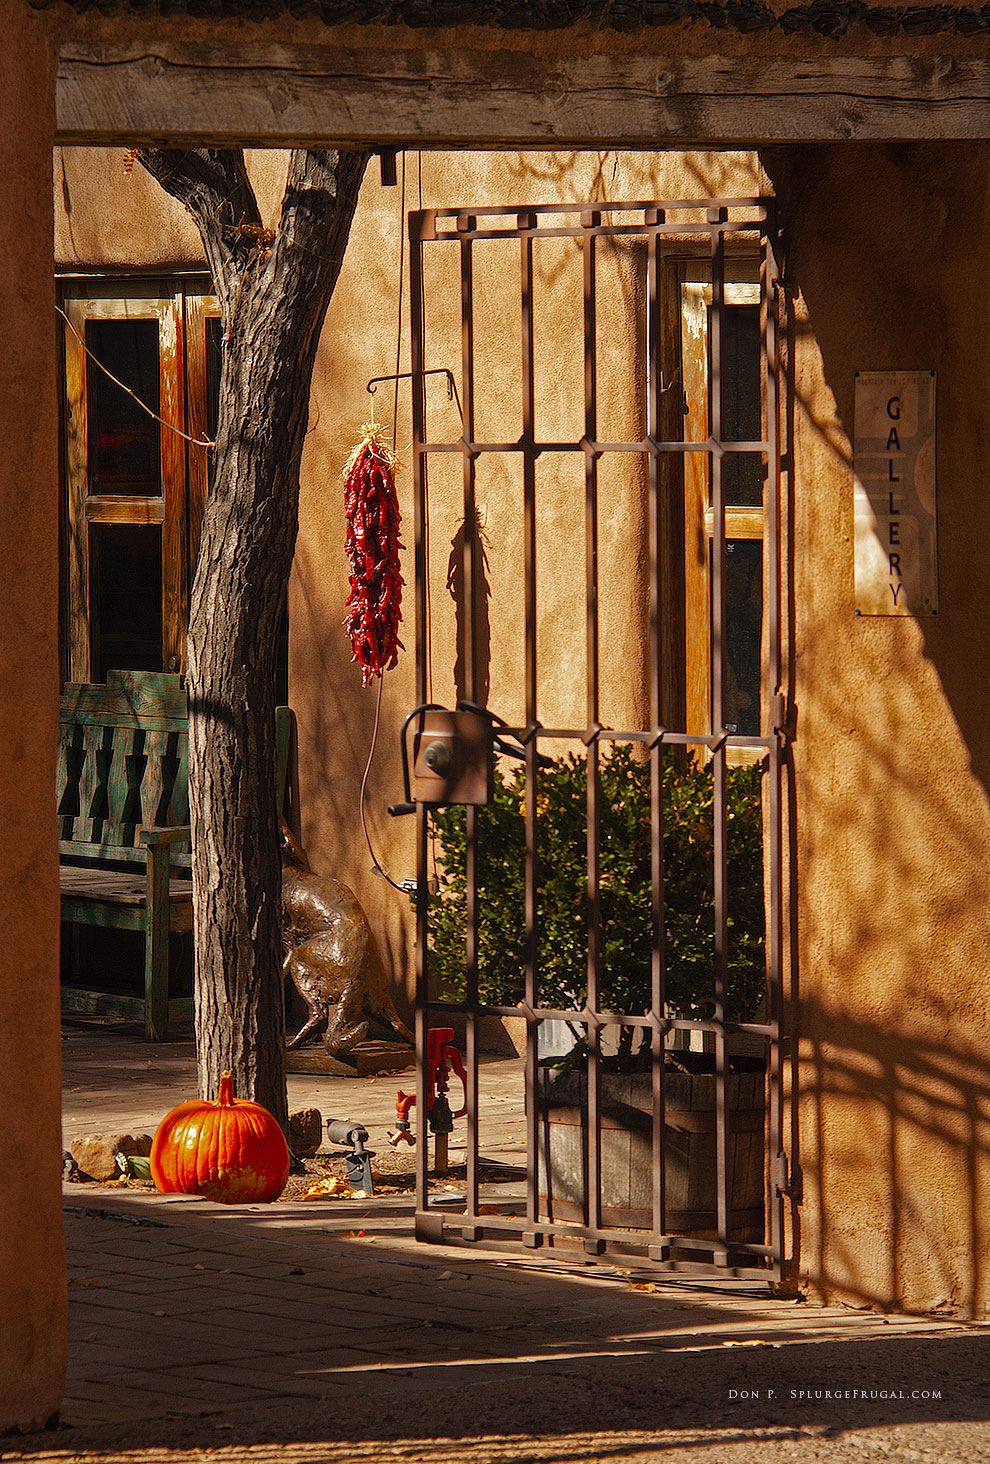 art gallery, Santa Fe, New Mexico